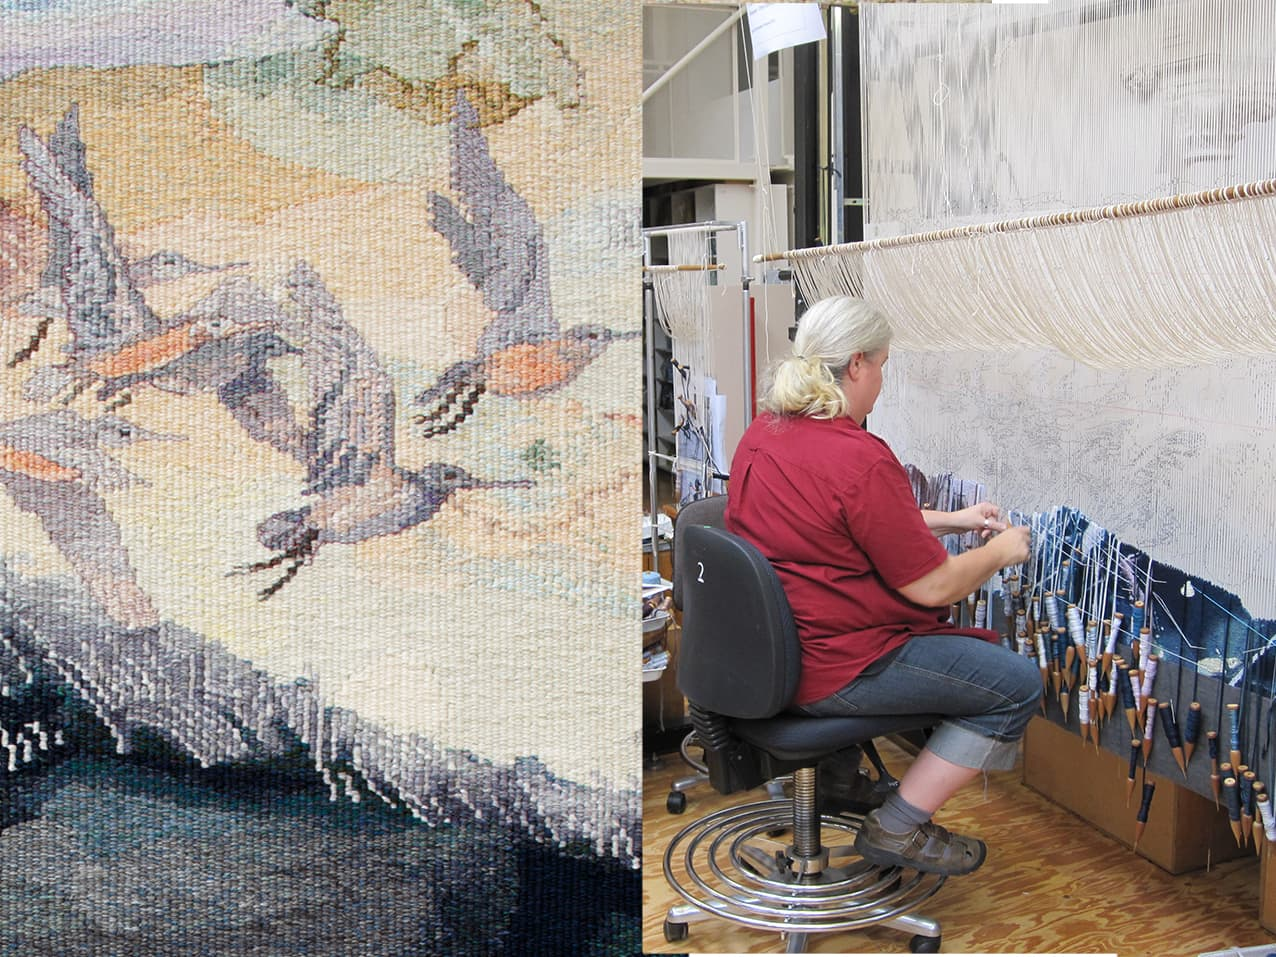 Progress shots of 'Concerning the wading birds of the Warrnambool wetlands' 2012, designed by John Wolseley, woven by Chris Cochius, Pamela Joyce & Milena Paplinska, wool and cotton, 1.80 x 1.90m. Photographs: ATW.